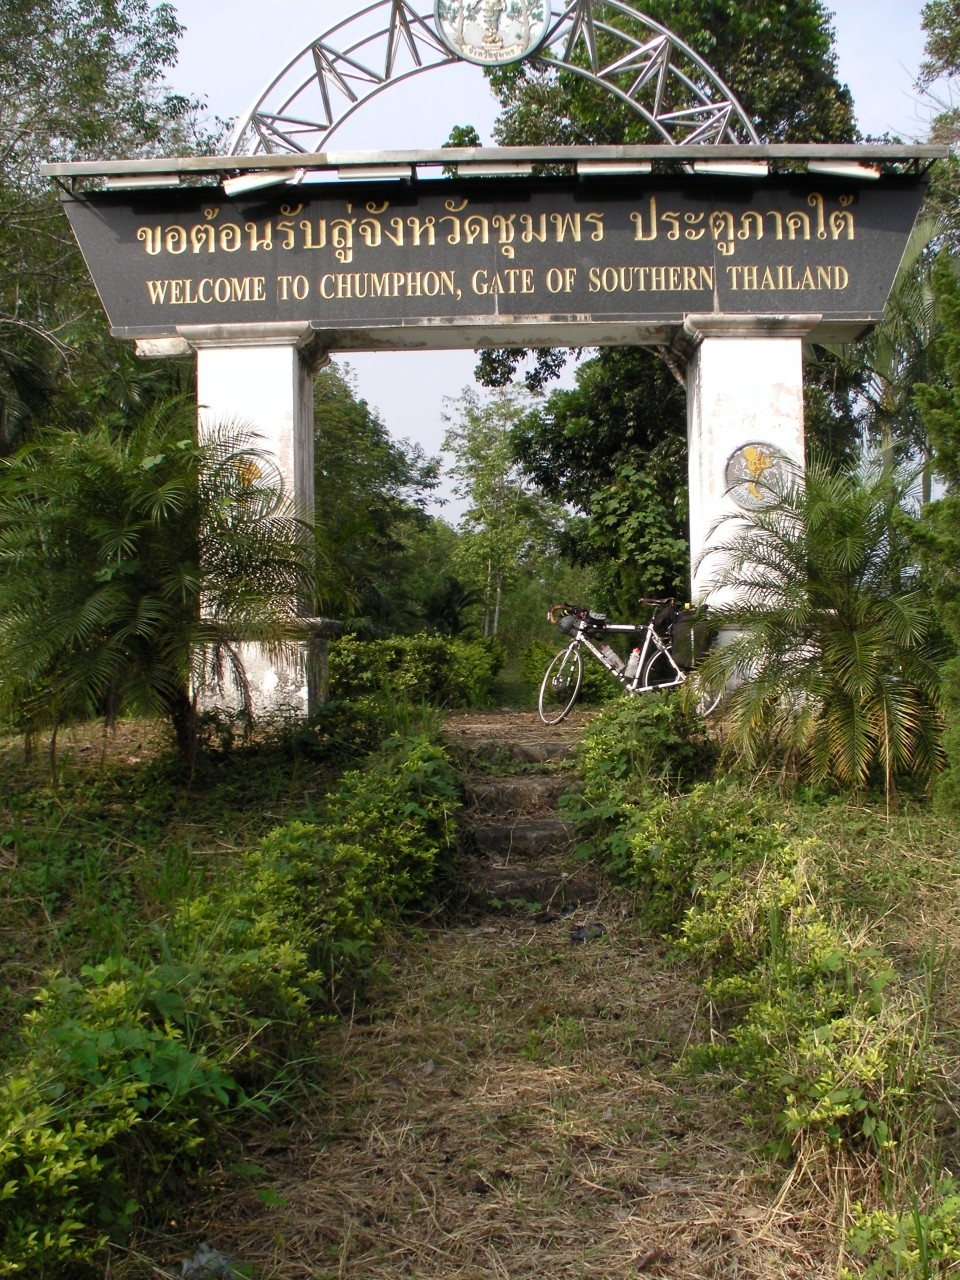 Vin's Genesis Criox de Fer bike at a ceremonial version of the Thai border.